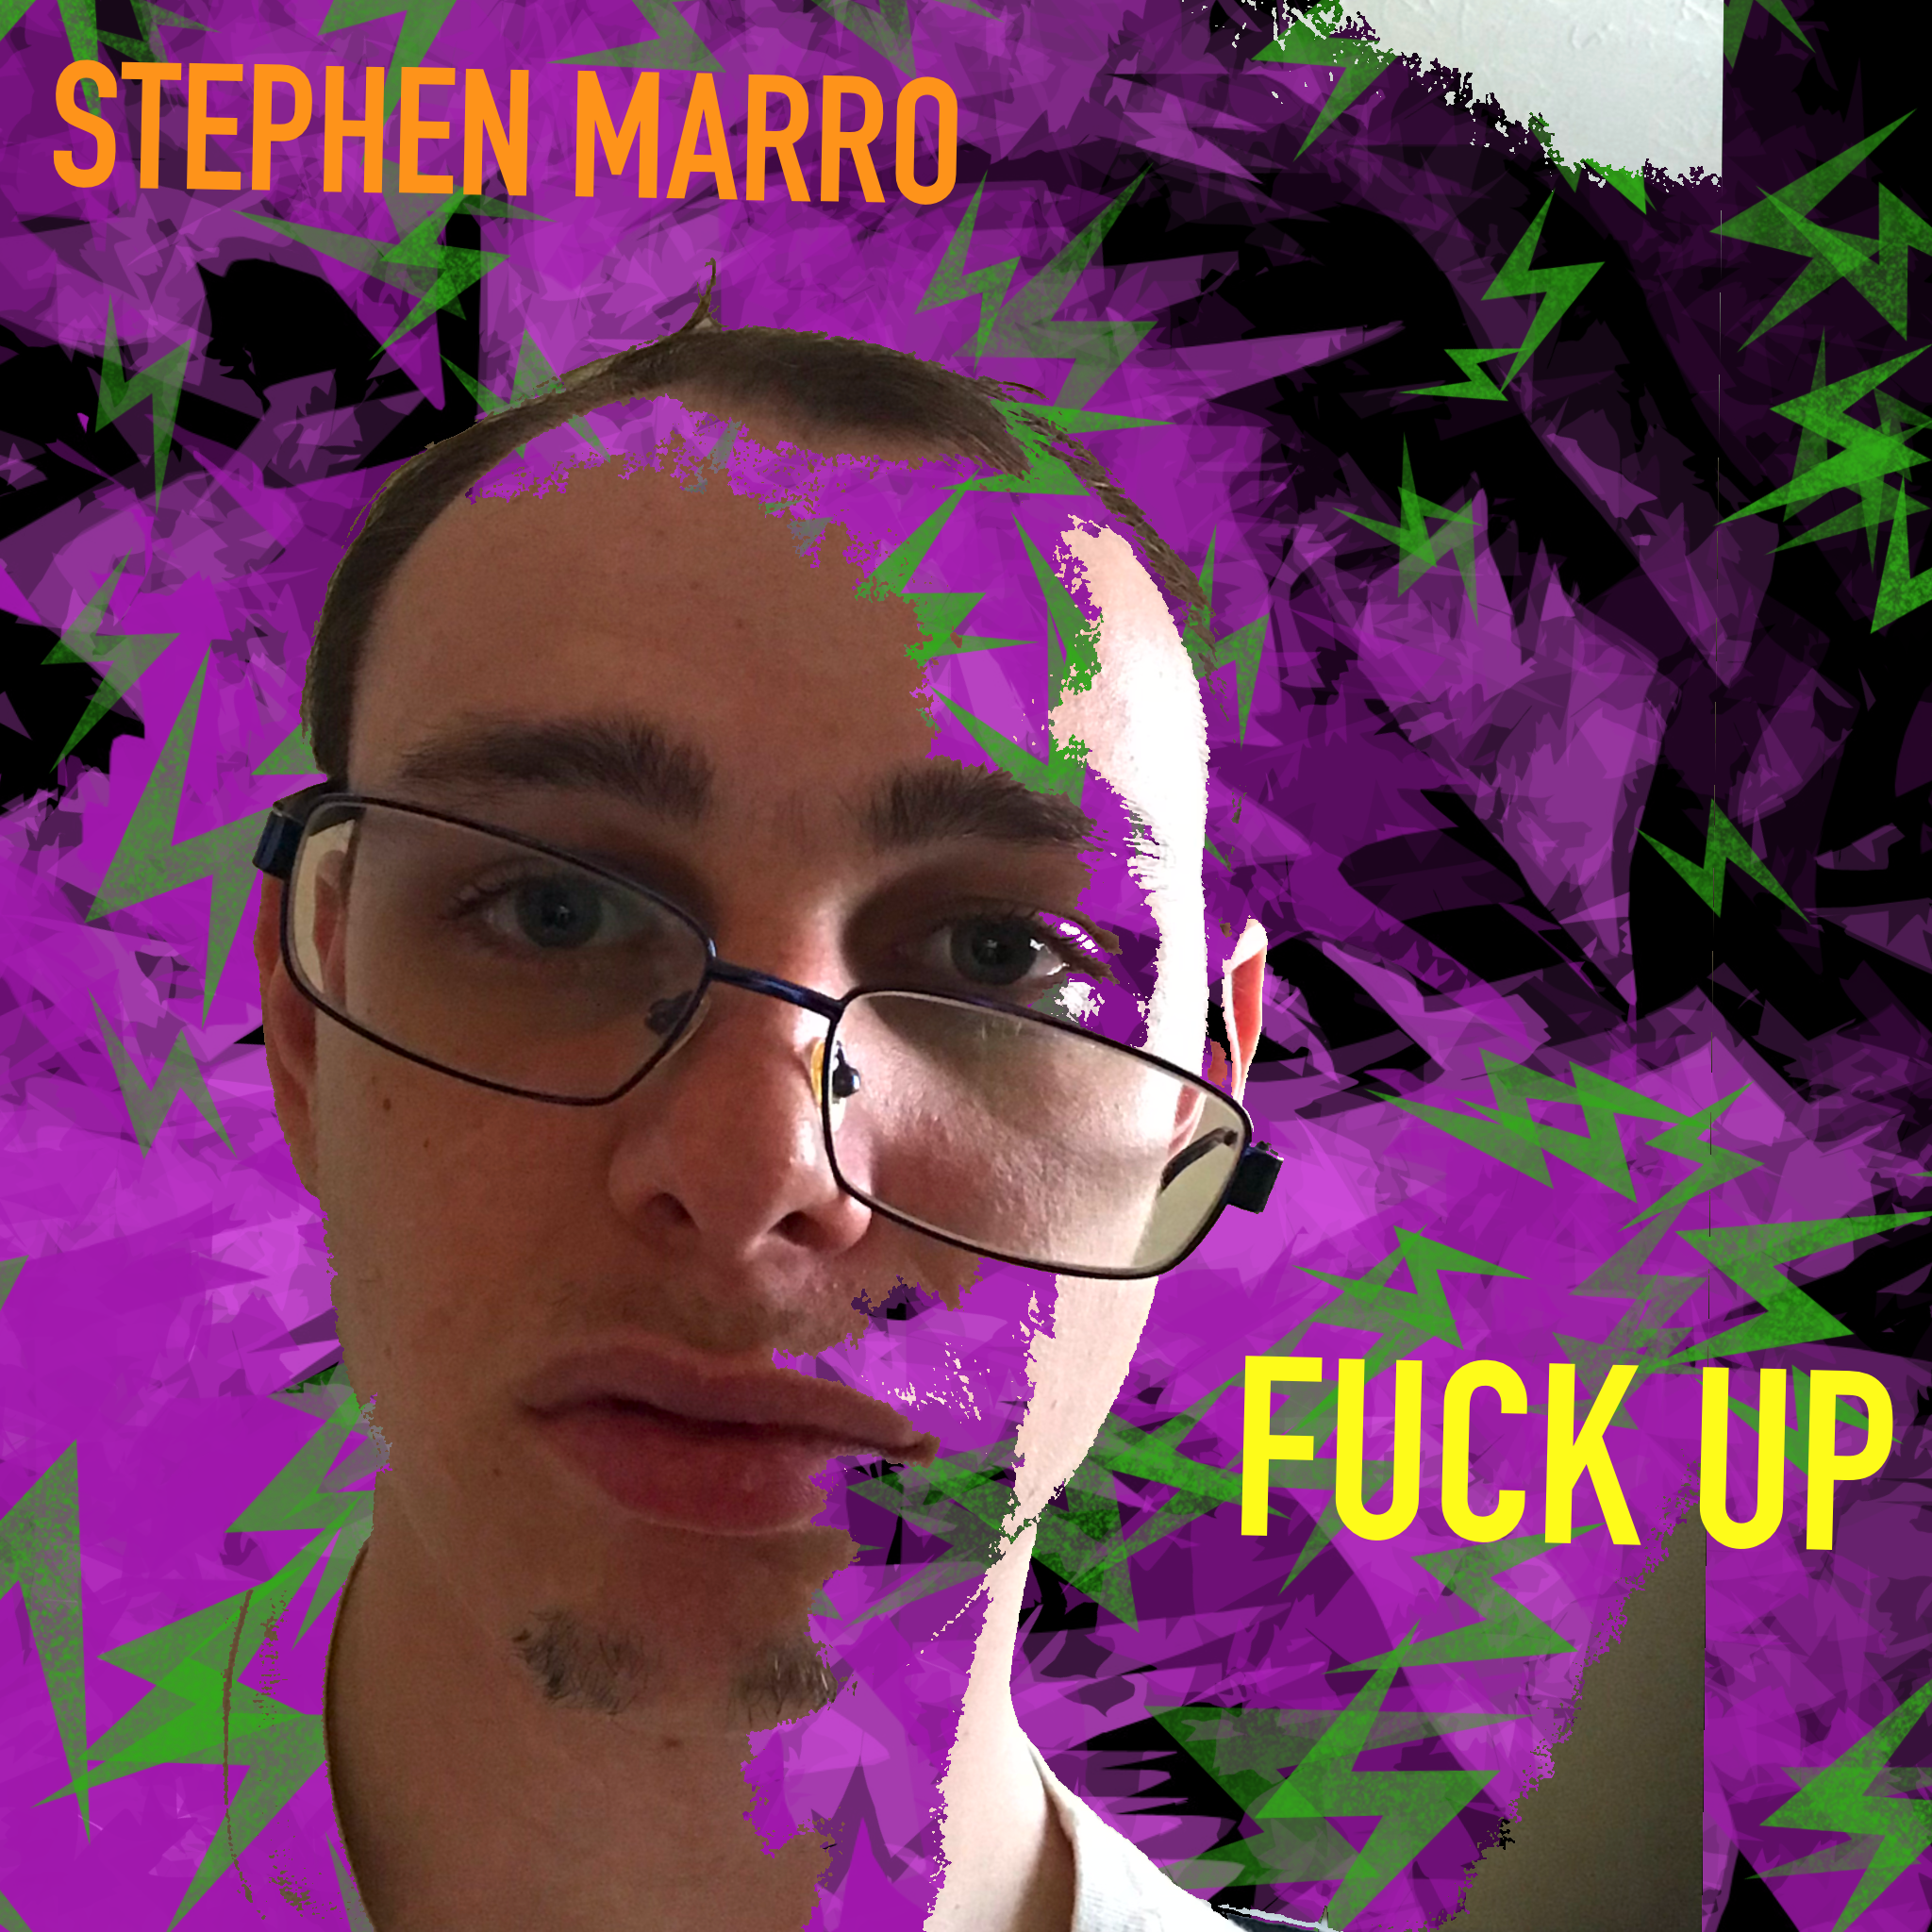 Hello, my name is Stephen Marro, and I'm a fuck up.